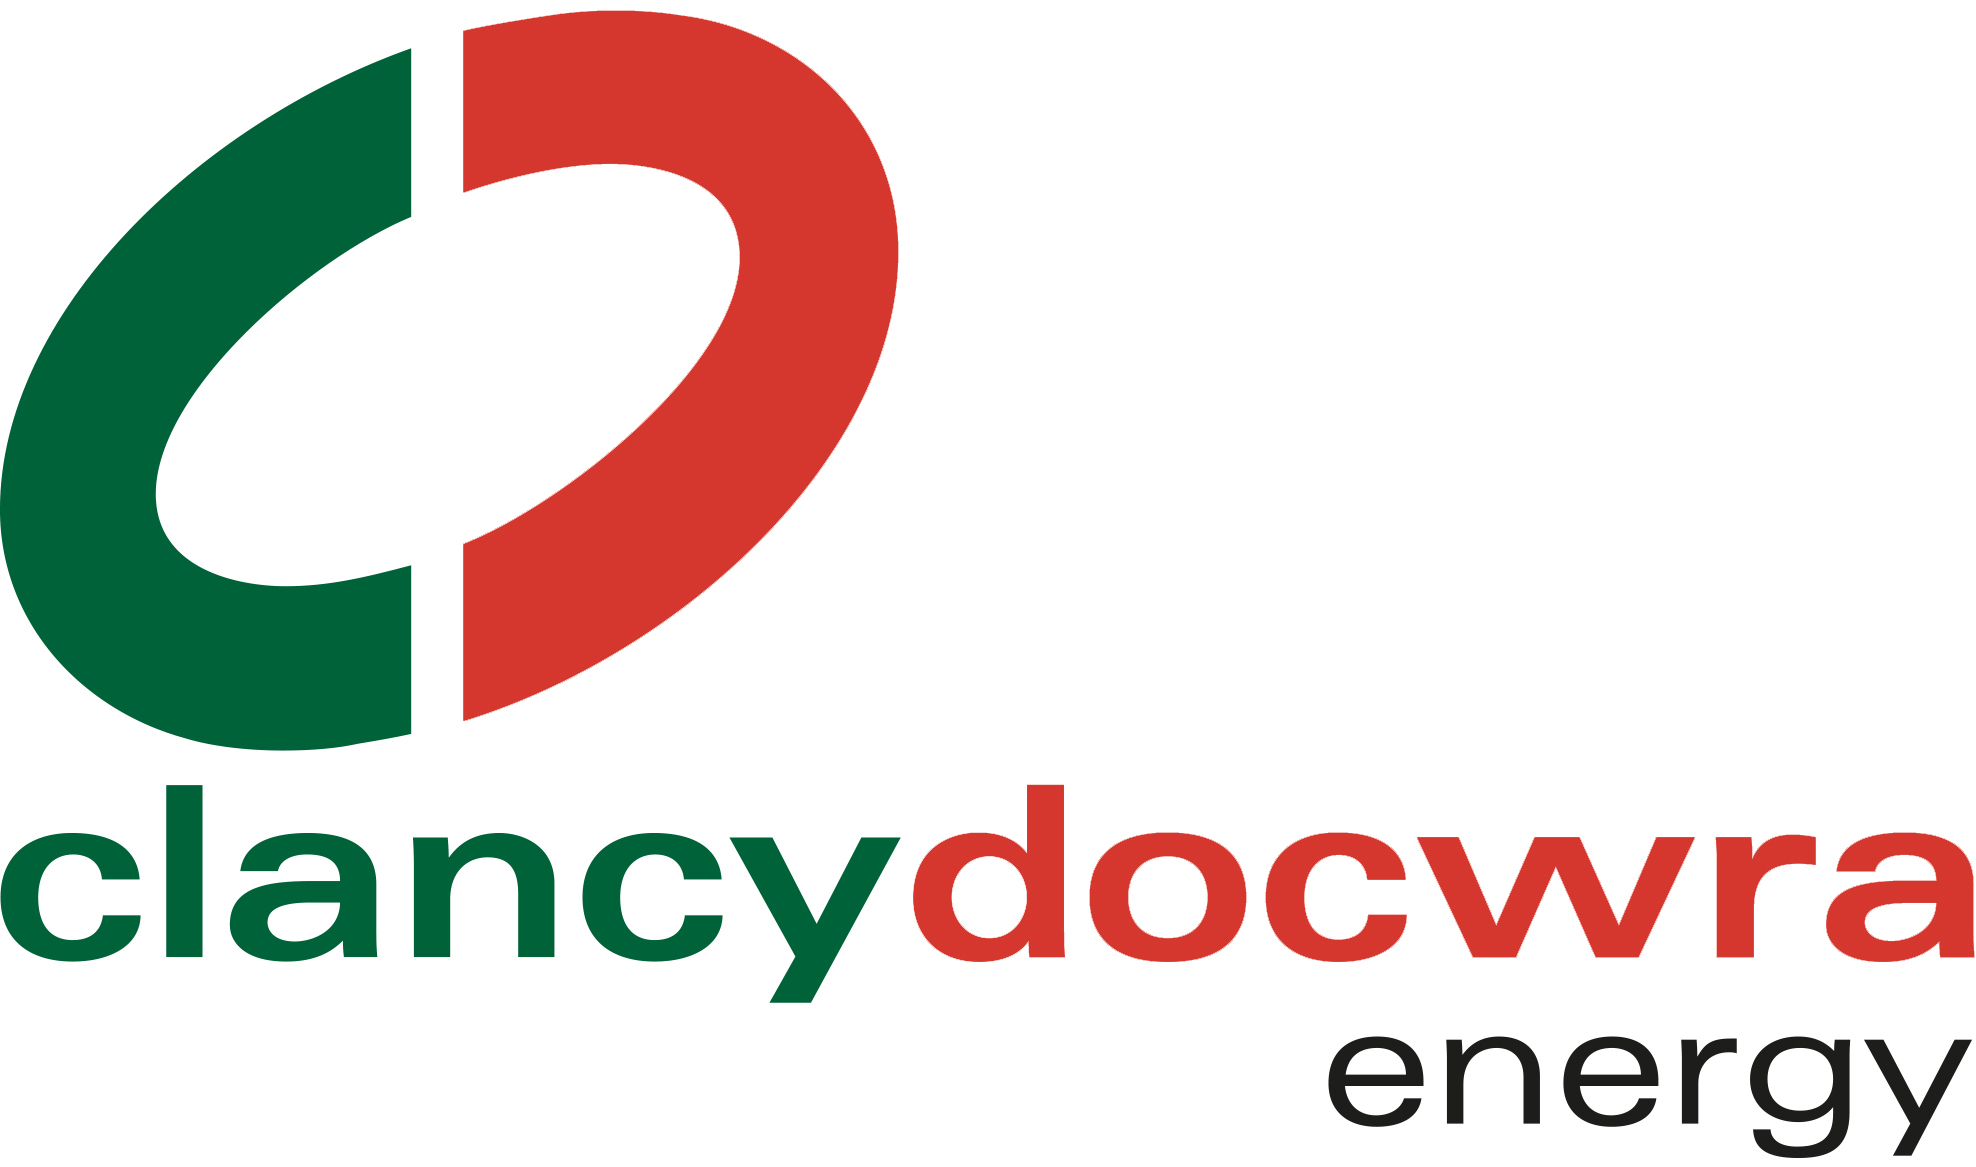 Energy Services - Clancy Docwra